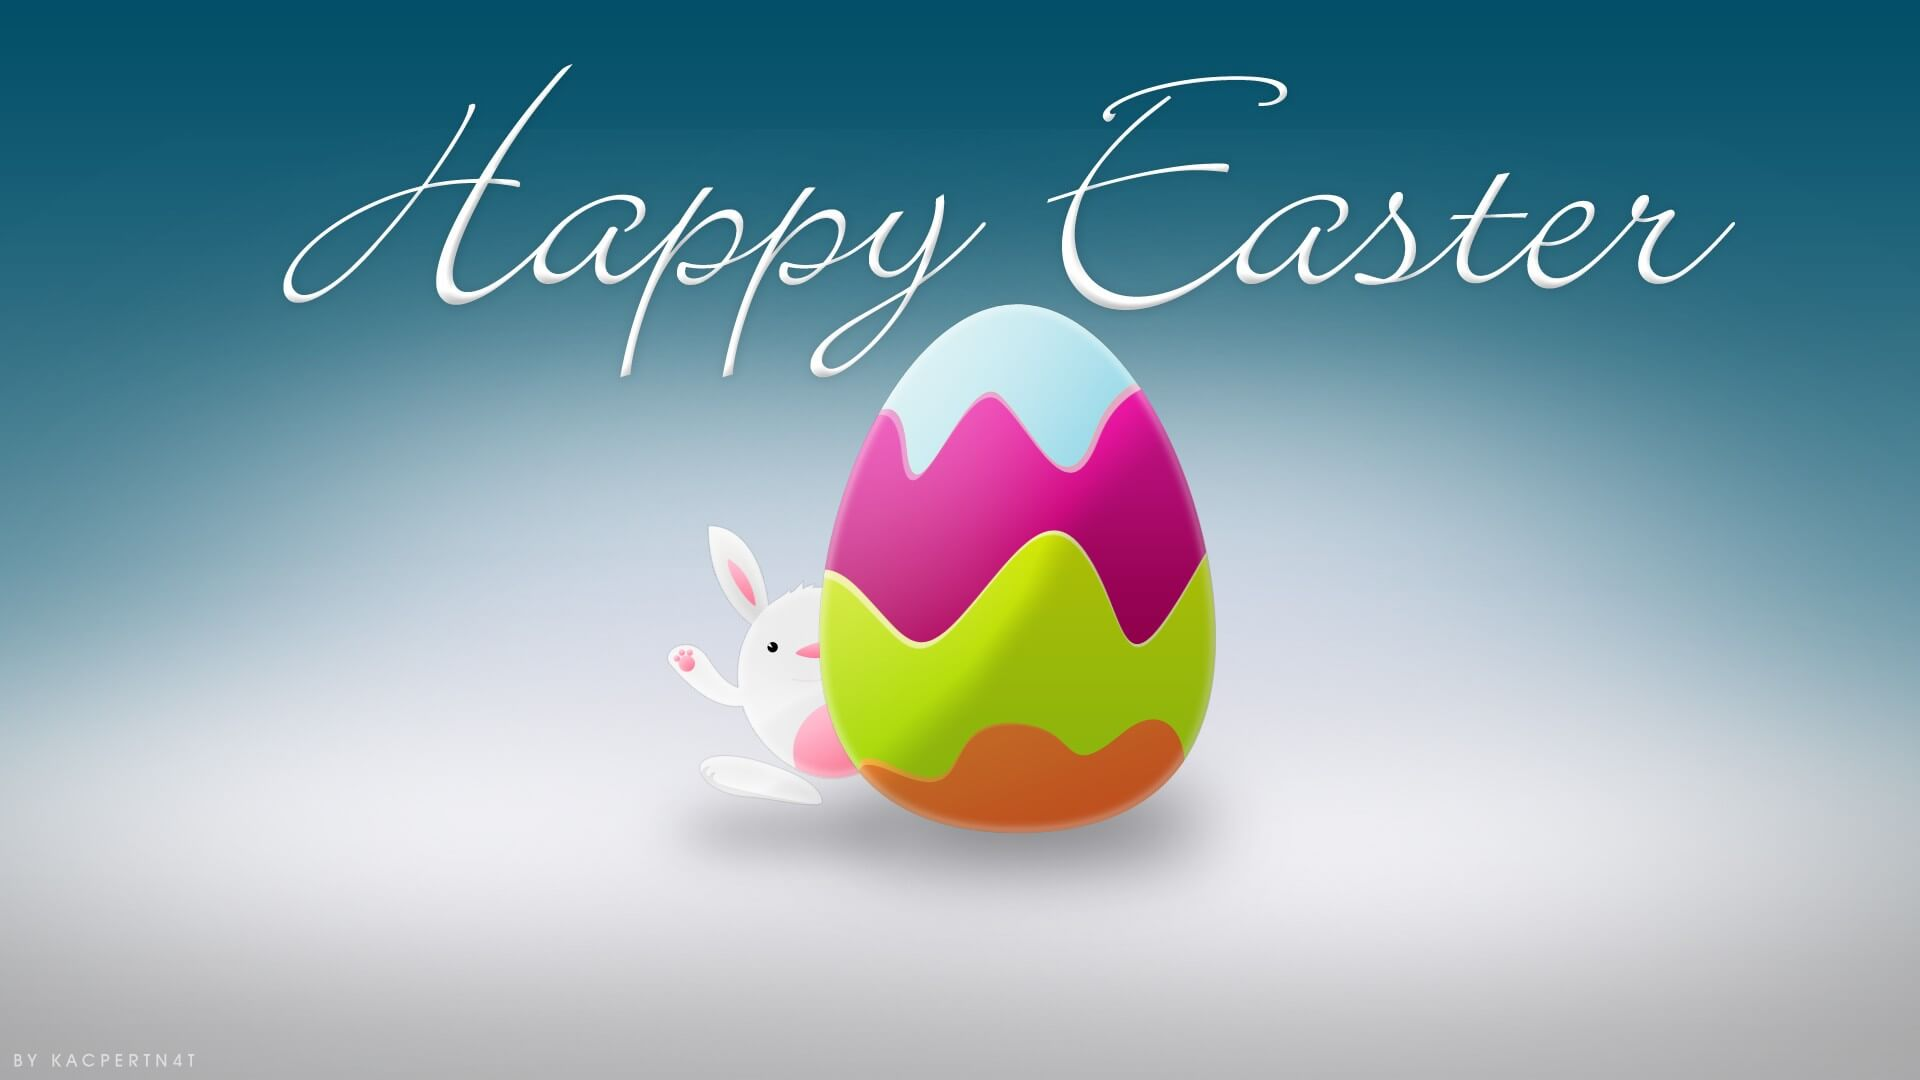 happy easter bunny rabbit image